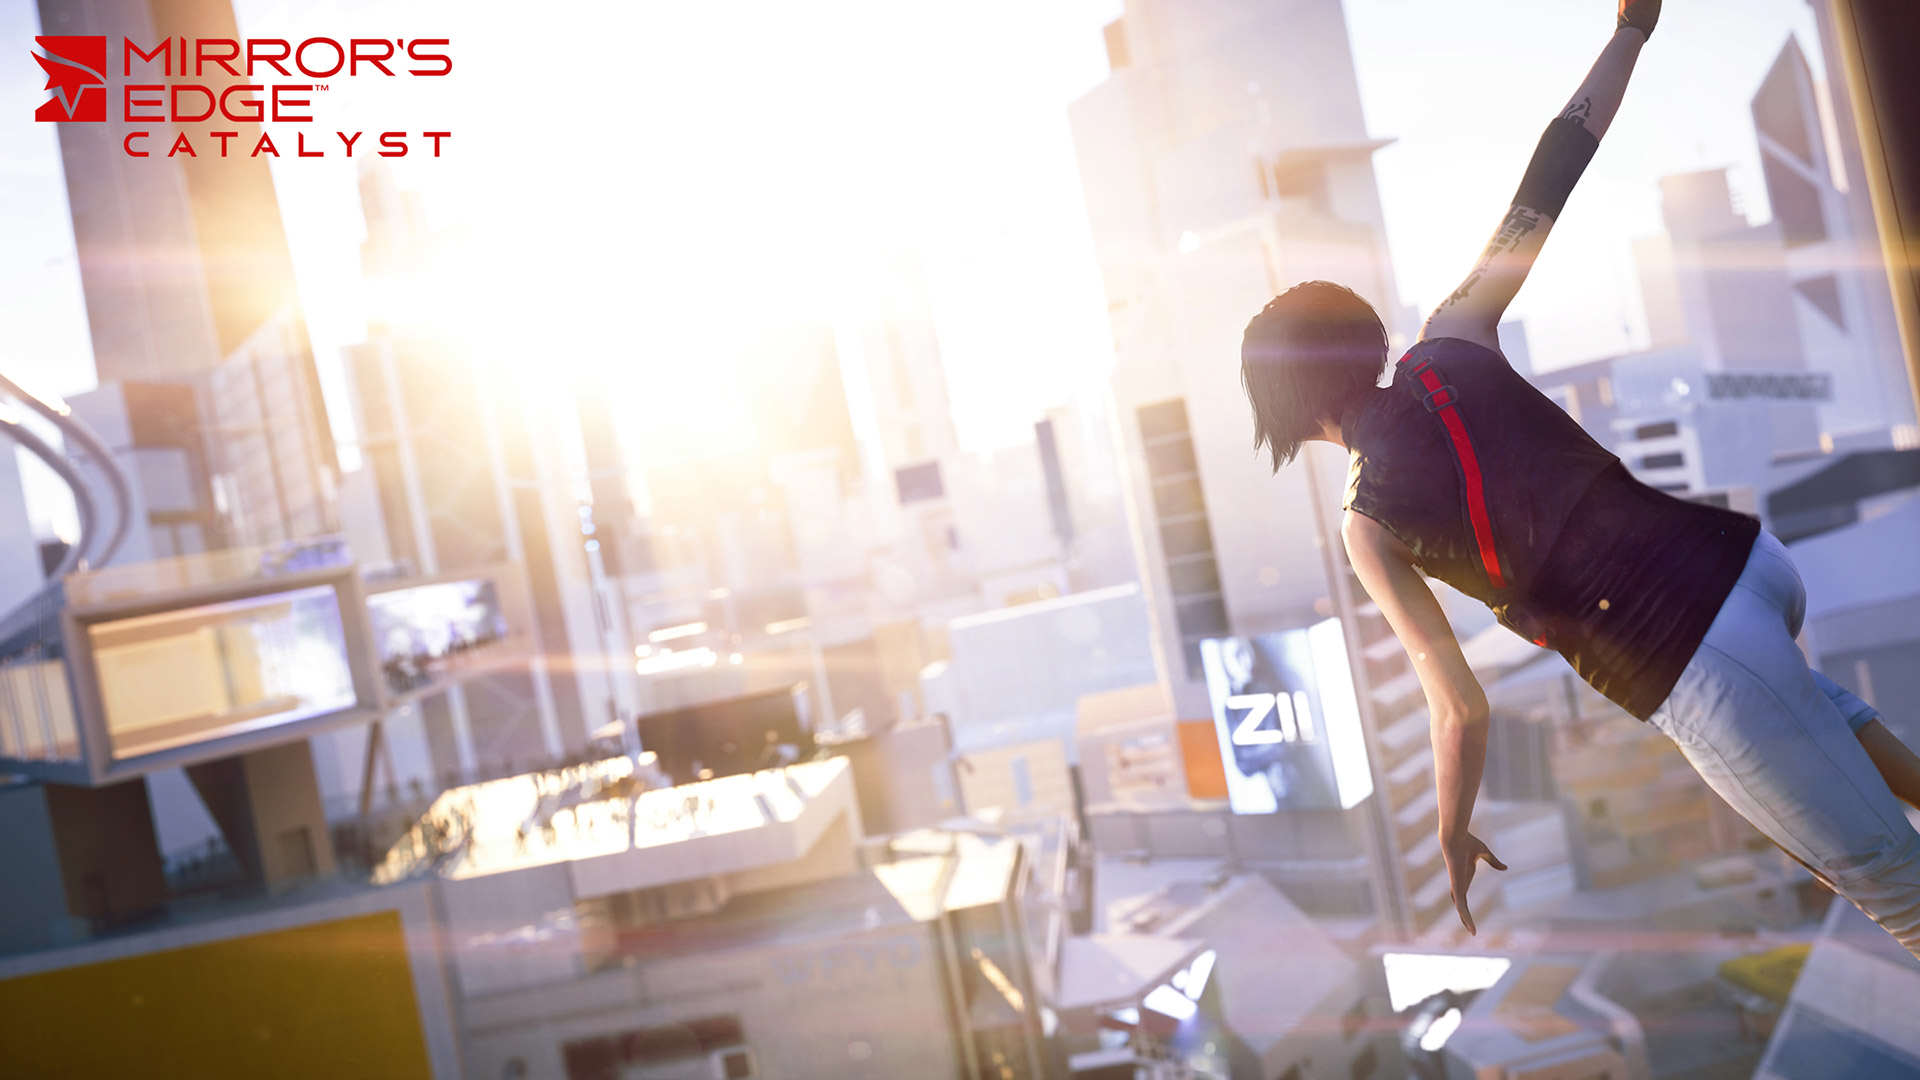 Mirrors Edge Catalyst Gets A New Story Trailer, Beta Test Announced rendition1.img